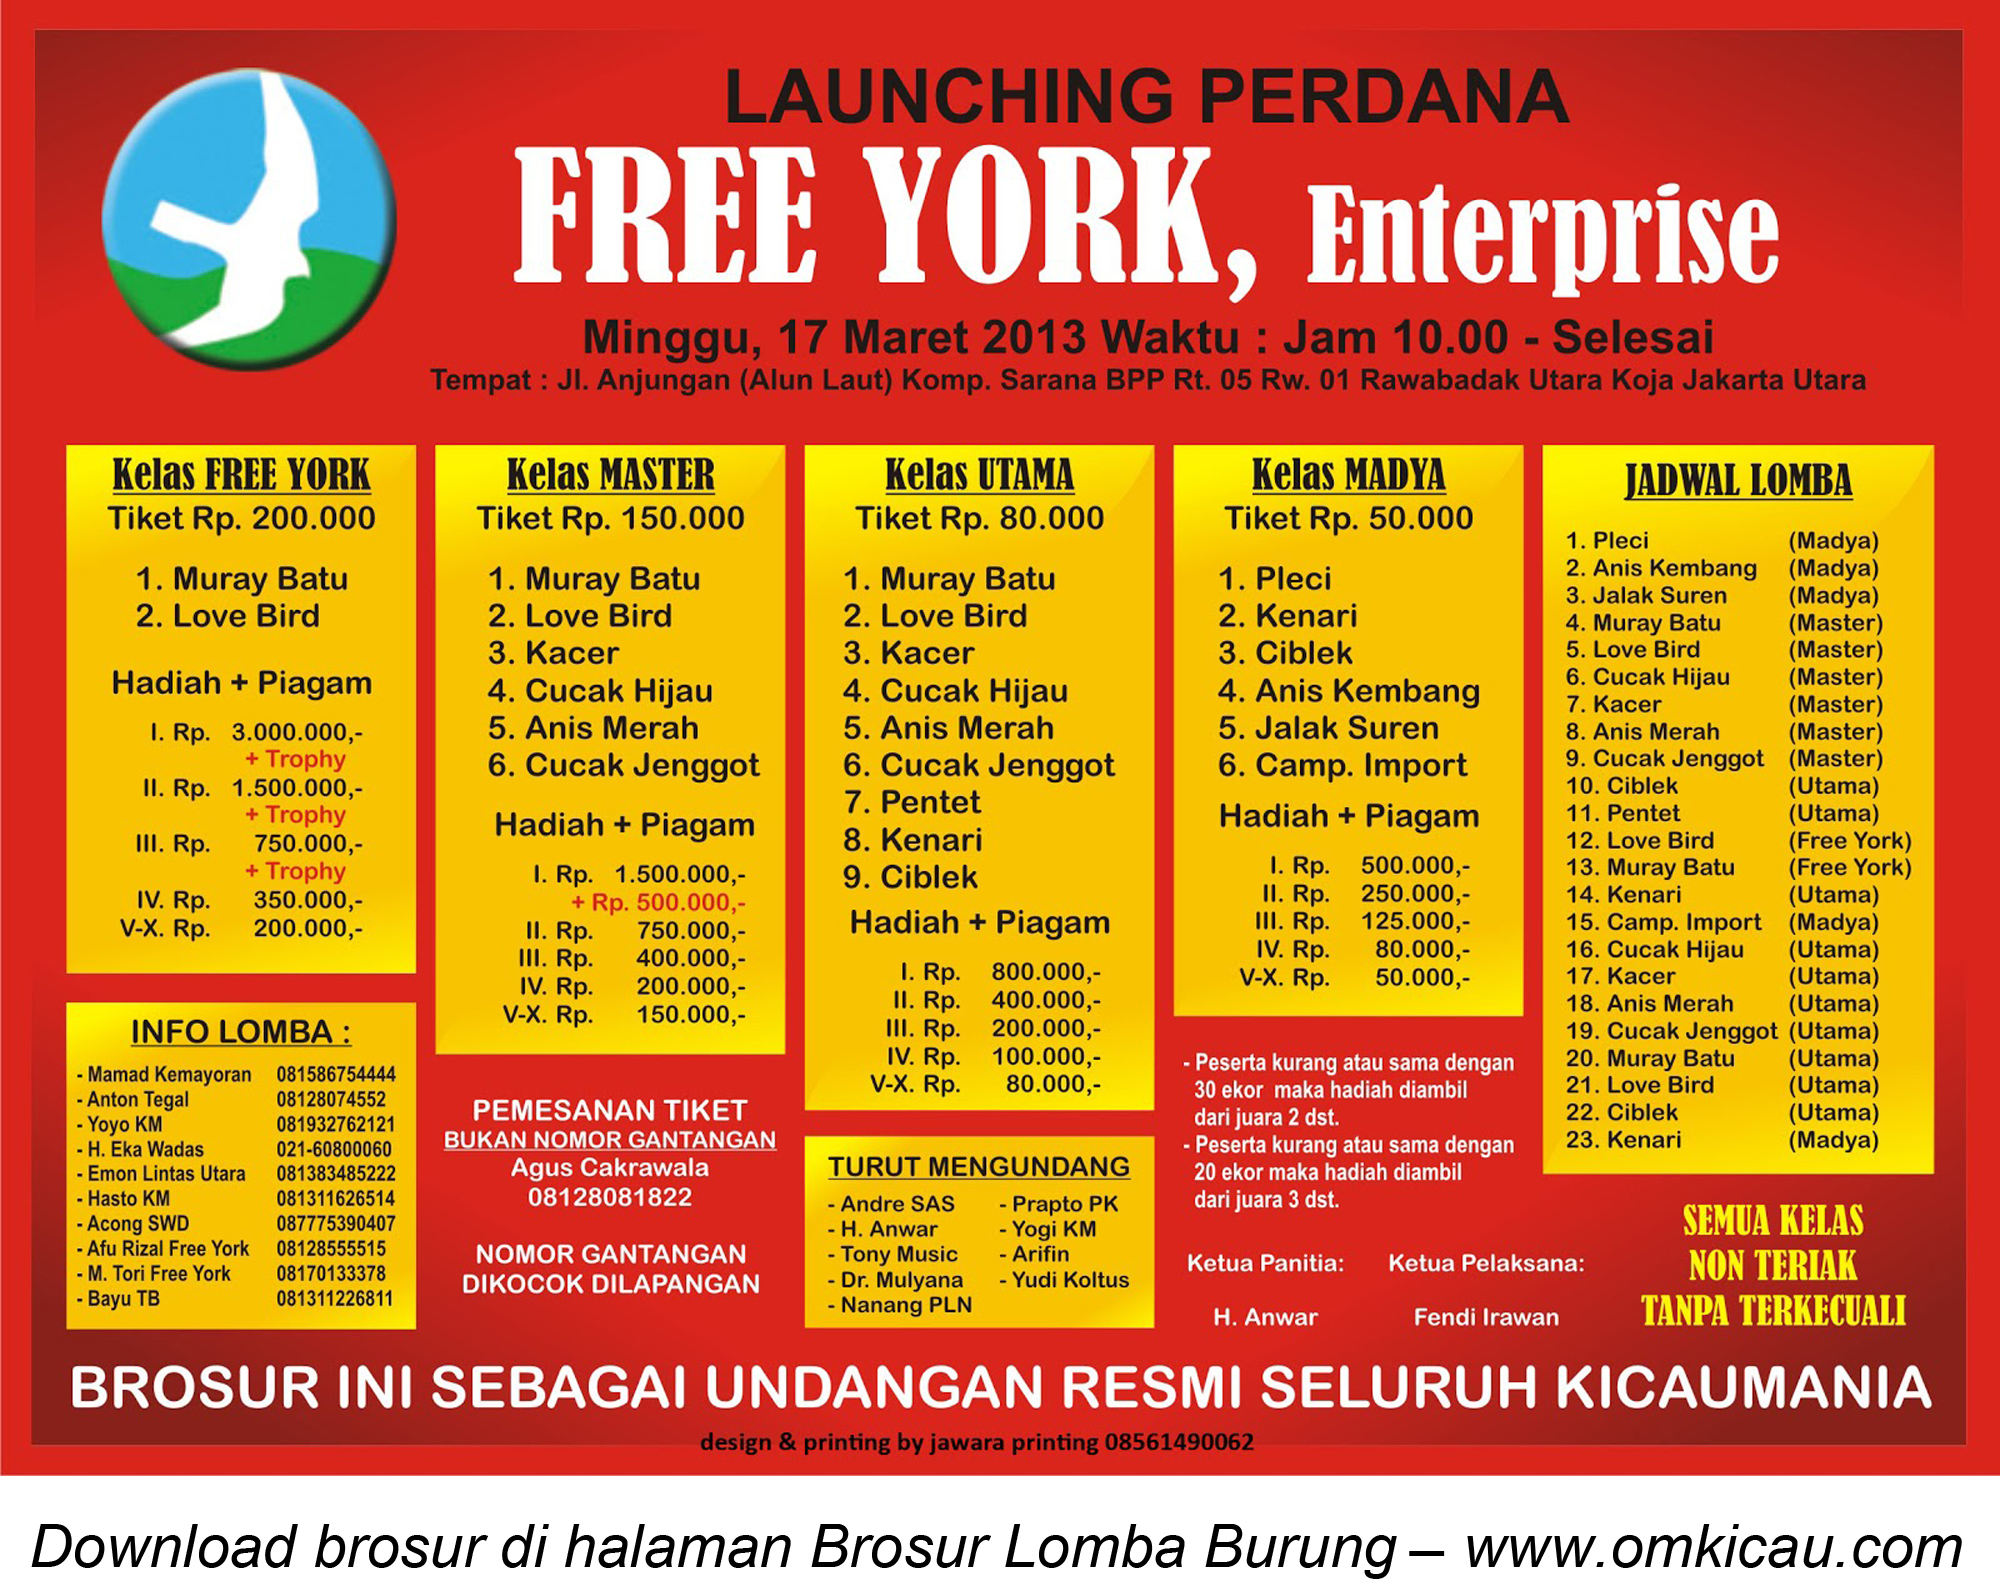 BROSUR LAUNCHING PERDANA FREE YORK